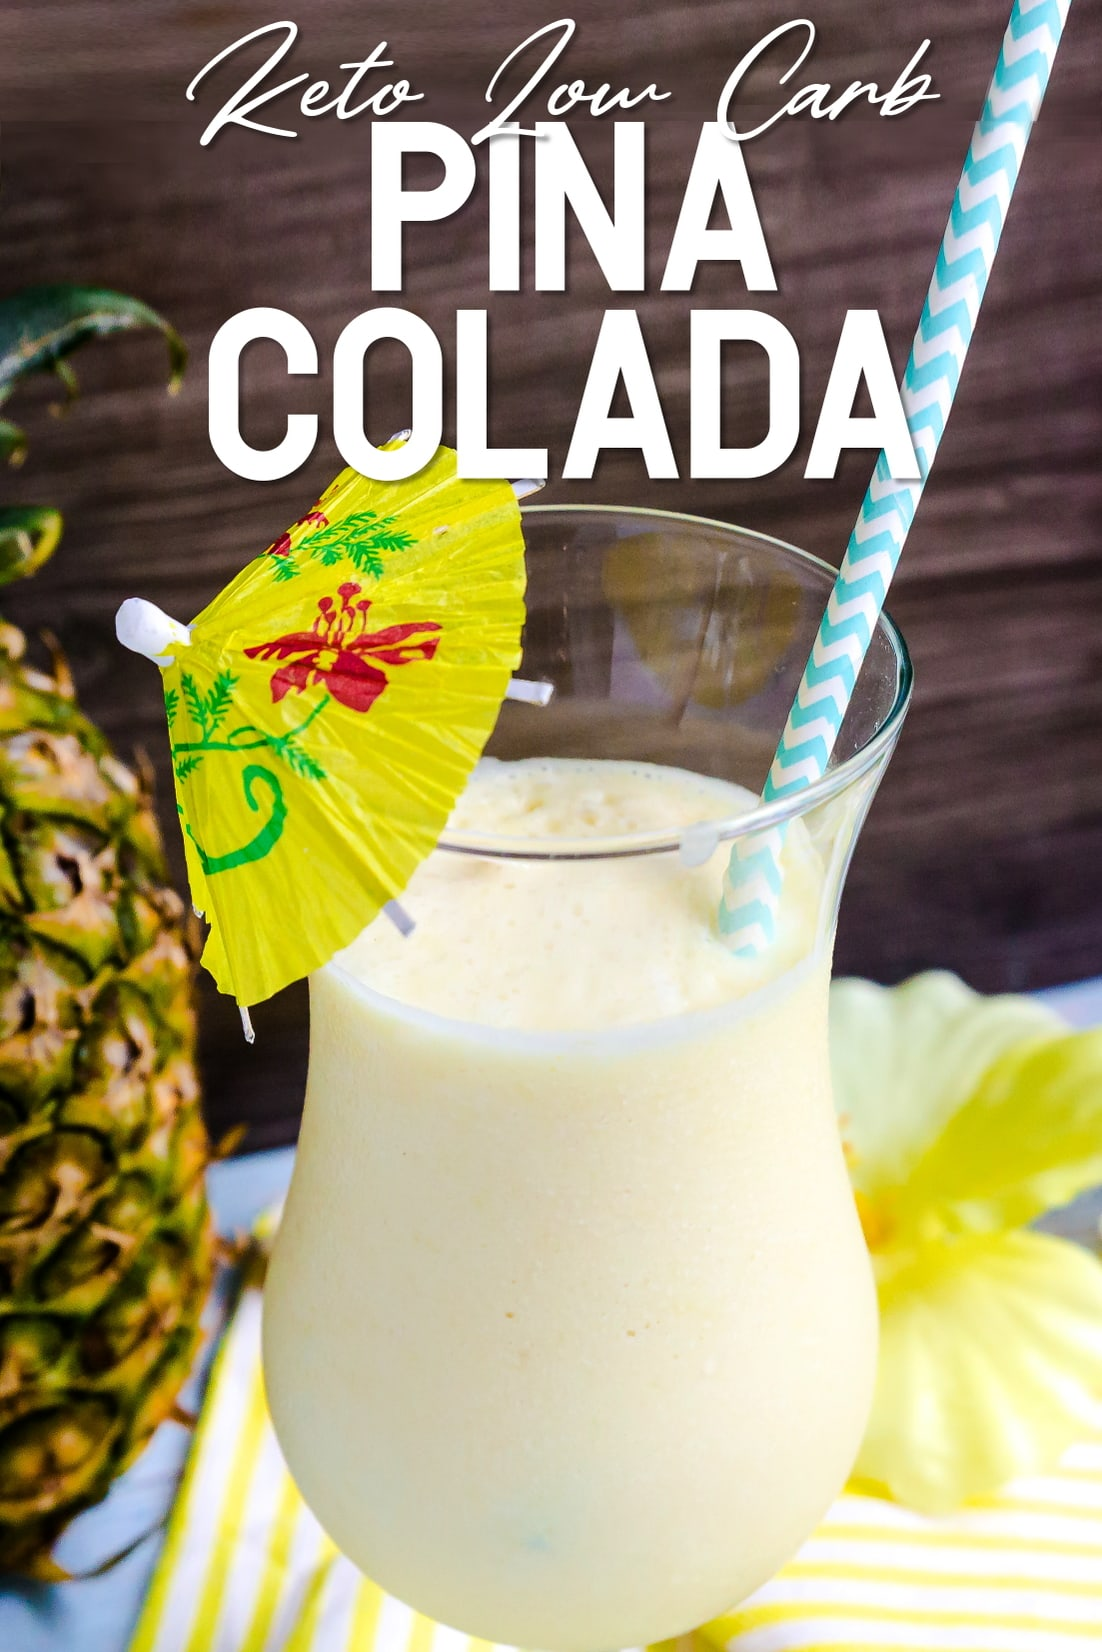 Keto Pina Colada with a straw